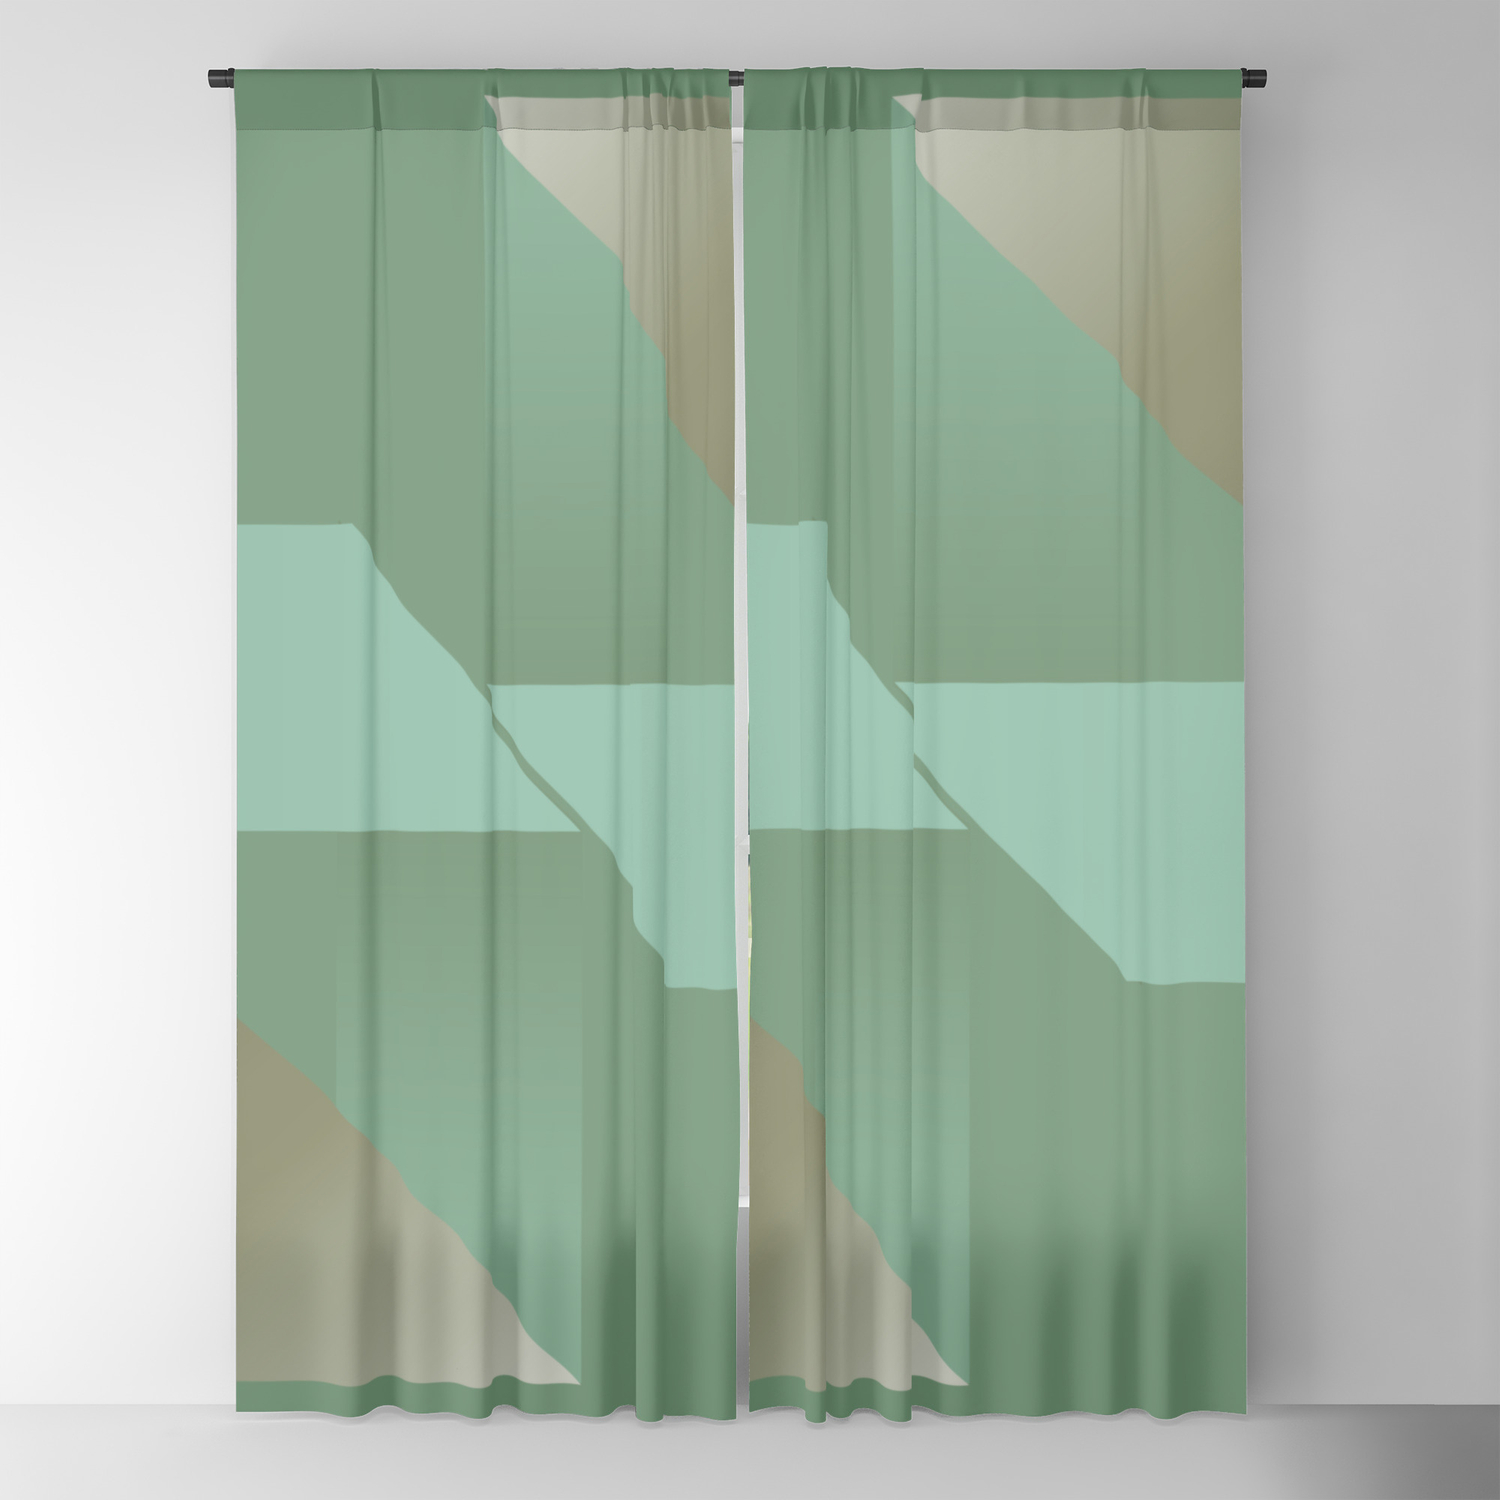 Image of: A Hymn To Friendship Mid Century Modern Blackout Curtain By Anutu Society6